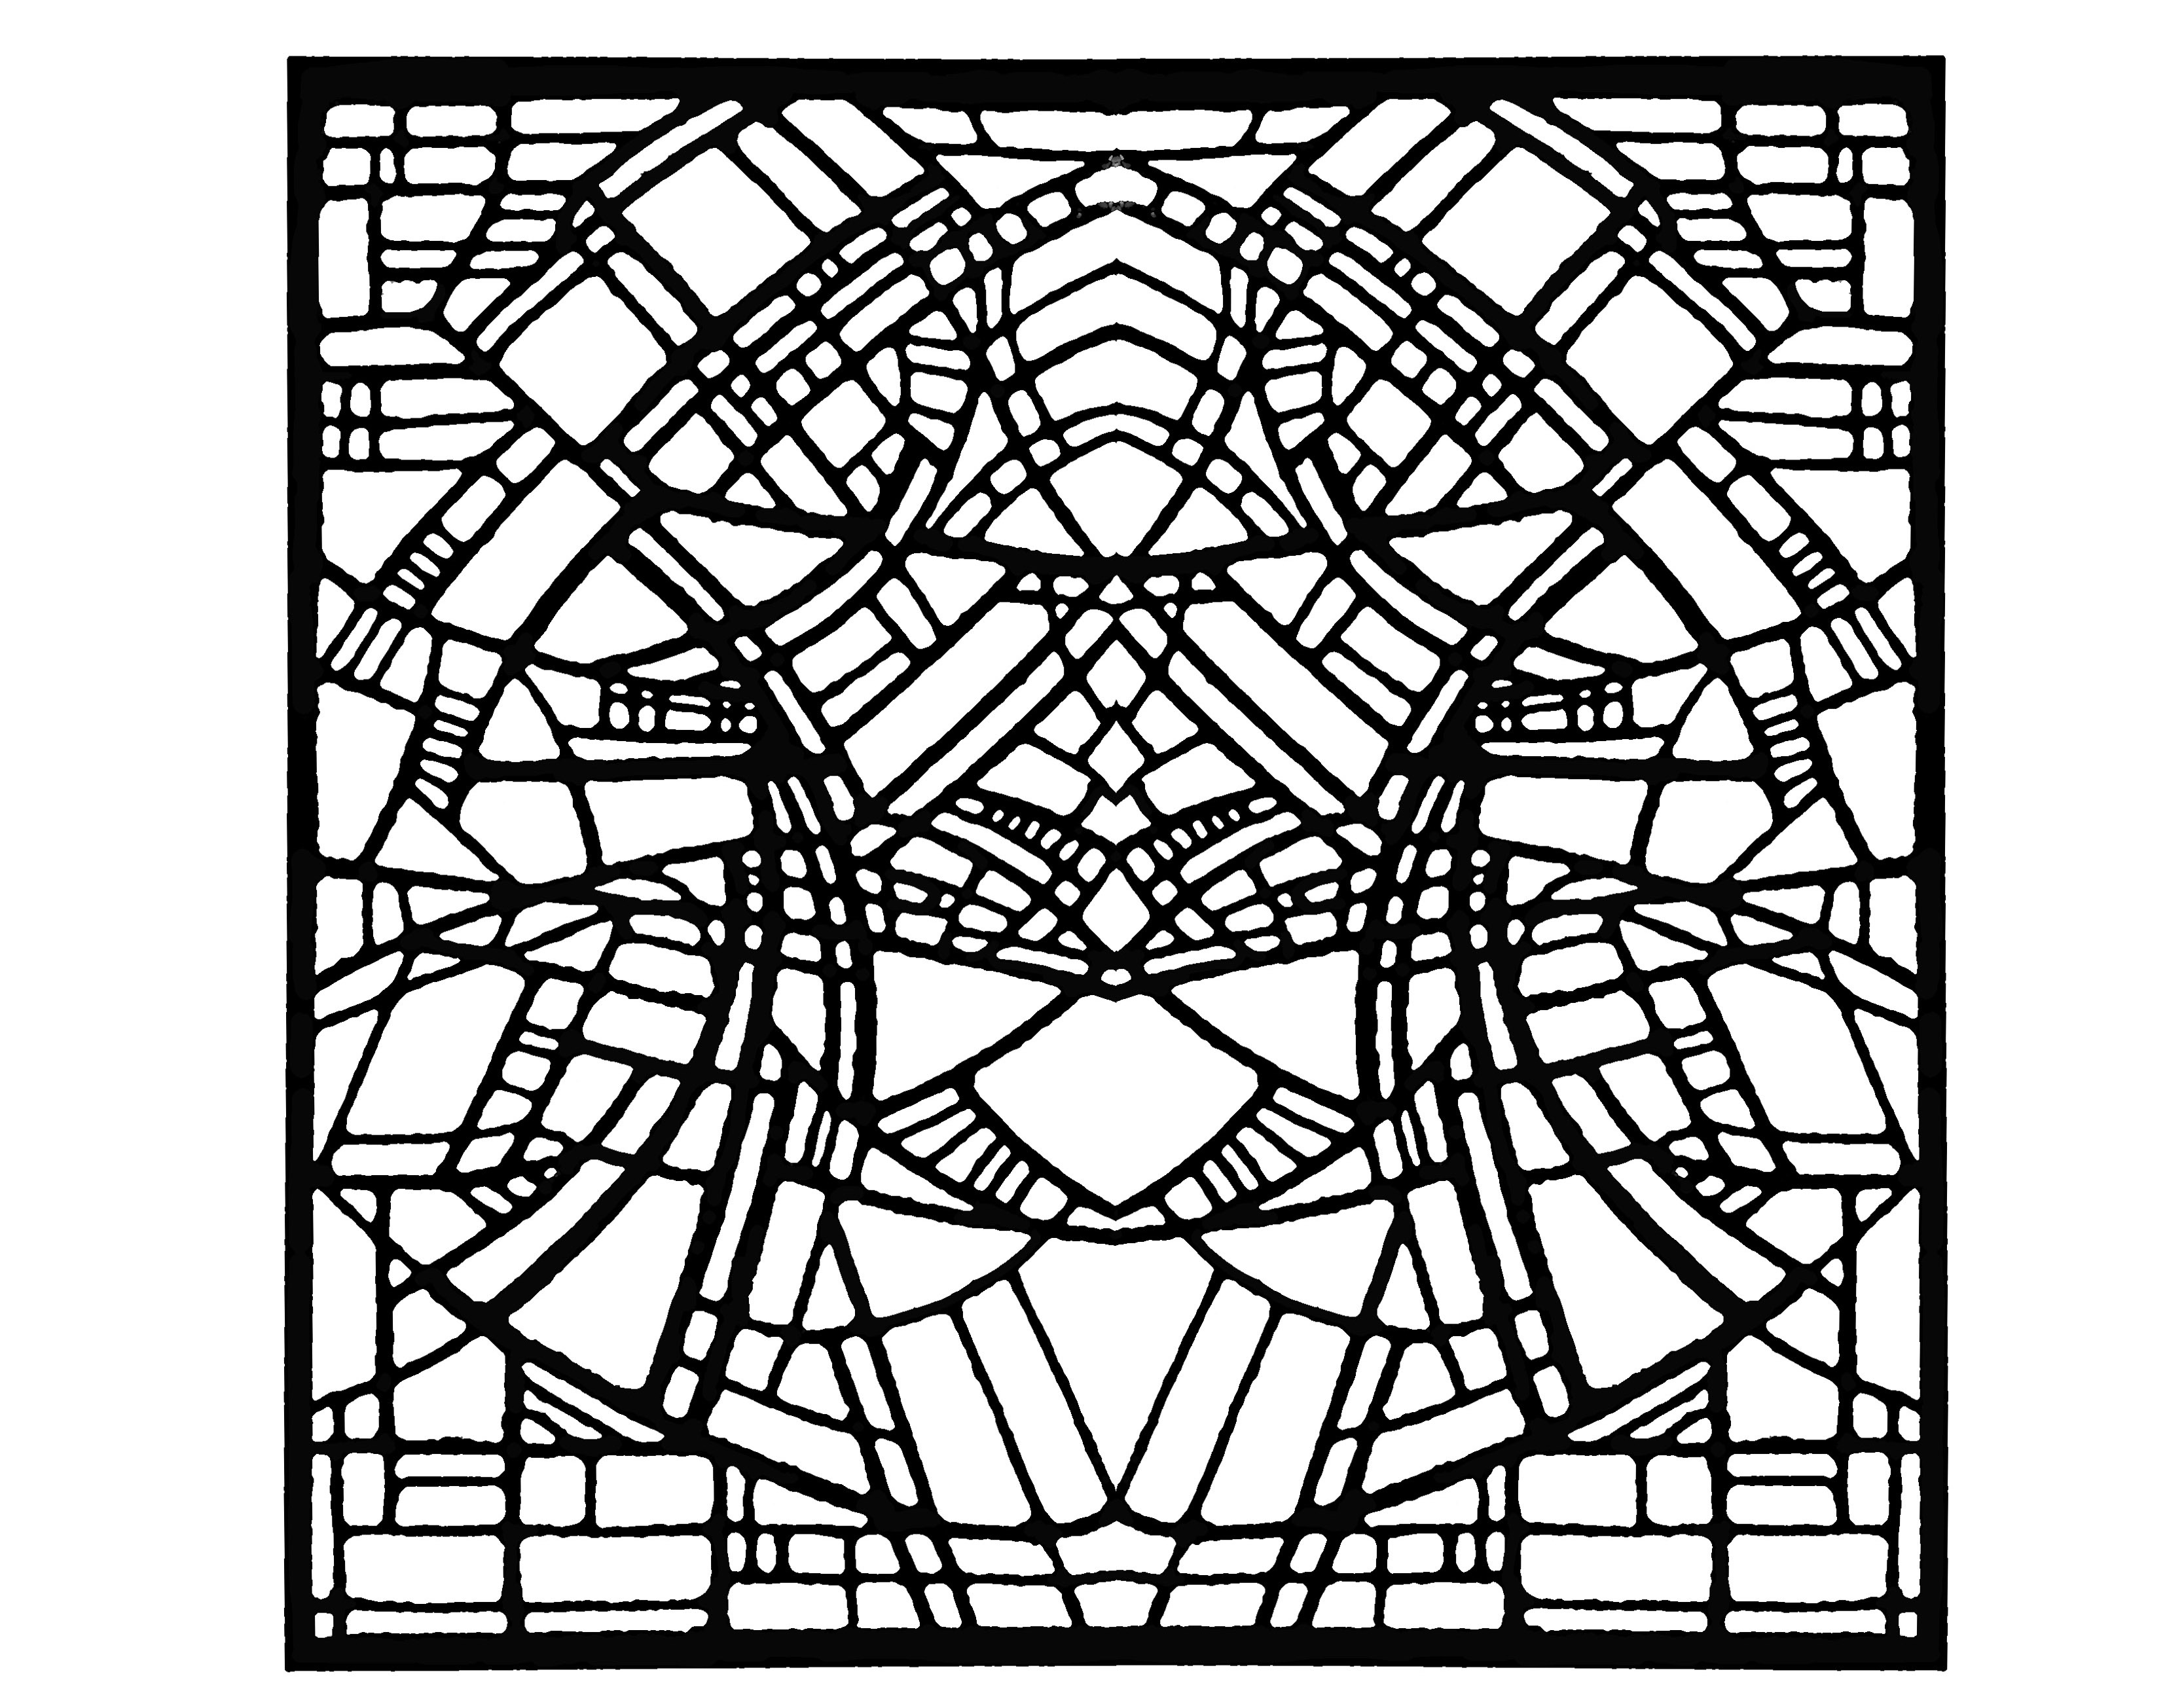 Coloring page made from a modern Stained glass : Church in Belgium, 1986 - Square version